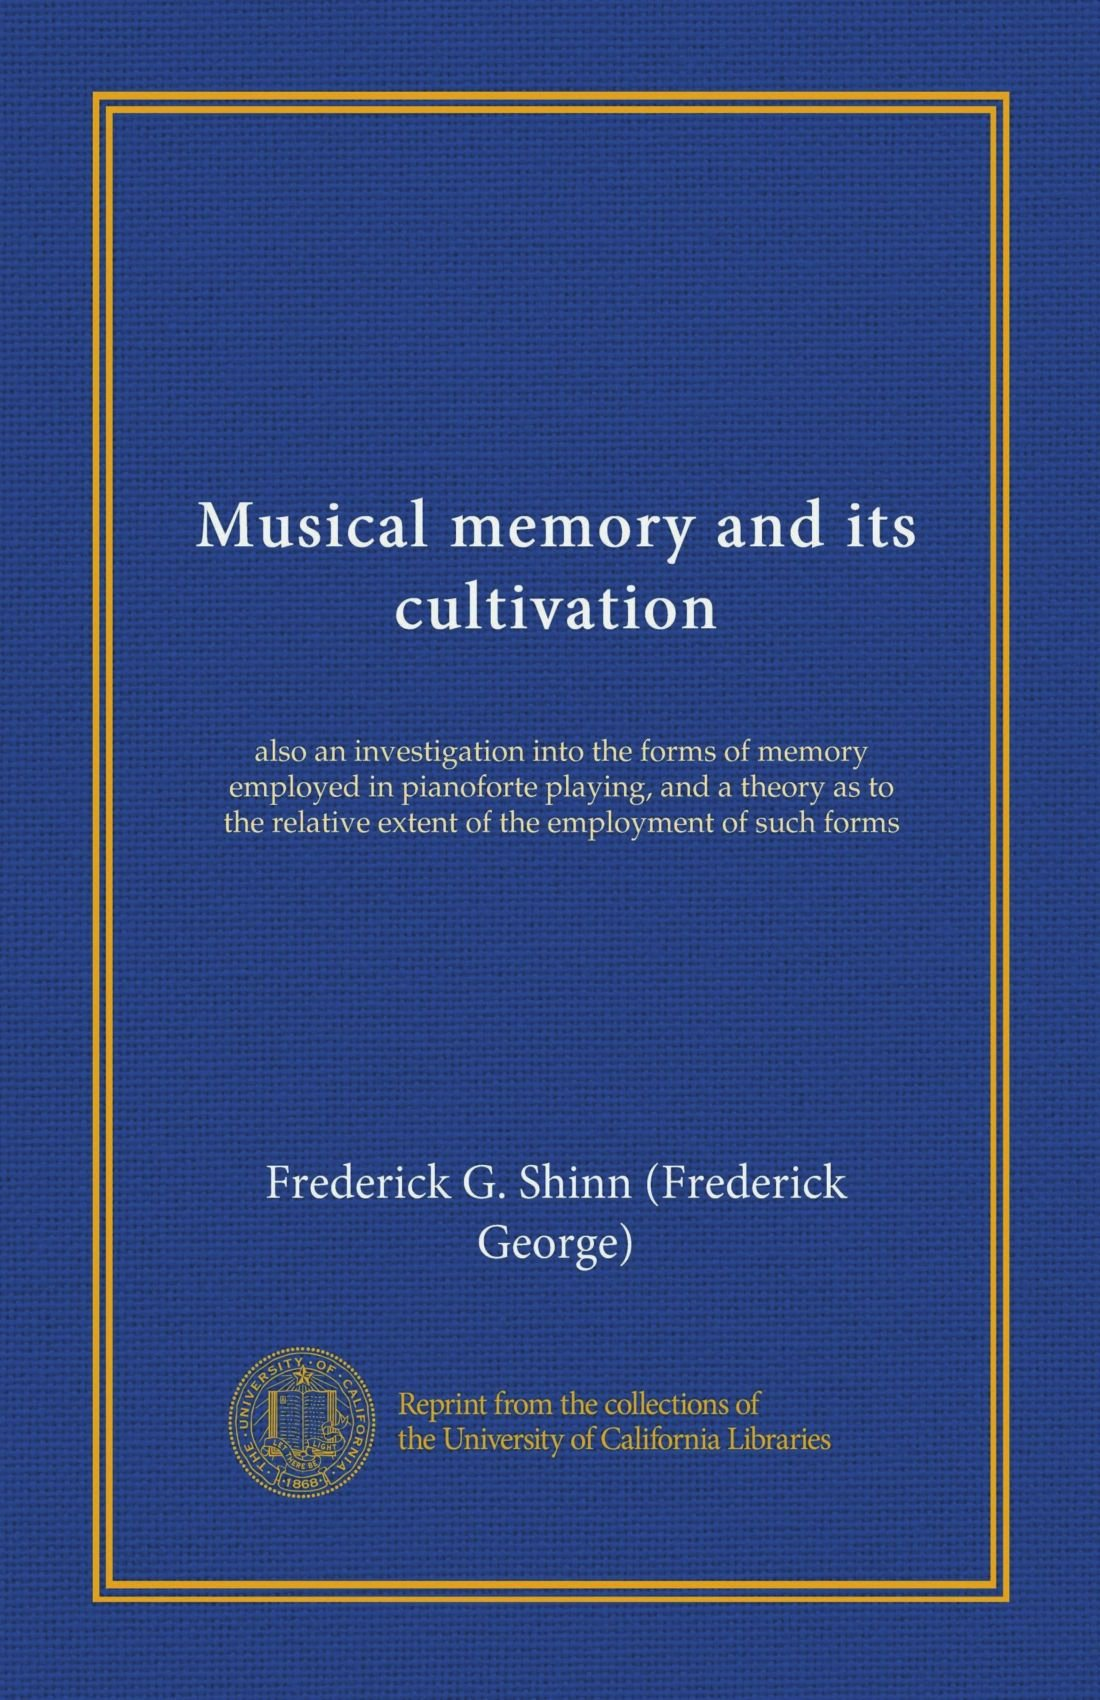 Download Musical memory and its cultivation (Vol-1): also an investigation into the forms of memory employed in pianoforte playing, and a theory as to the relative extent of the employment of such forms pdf